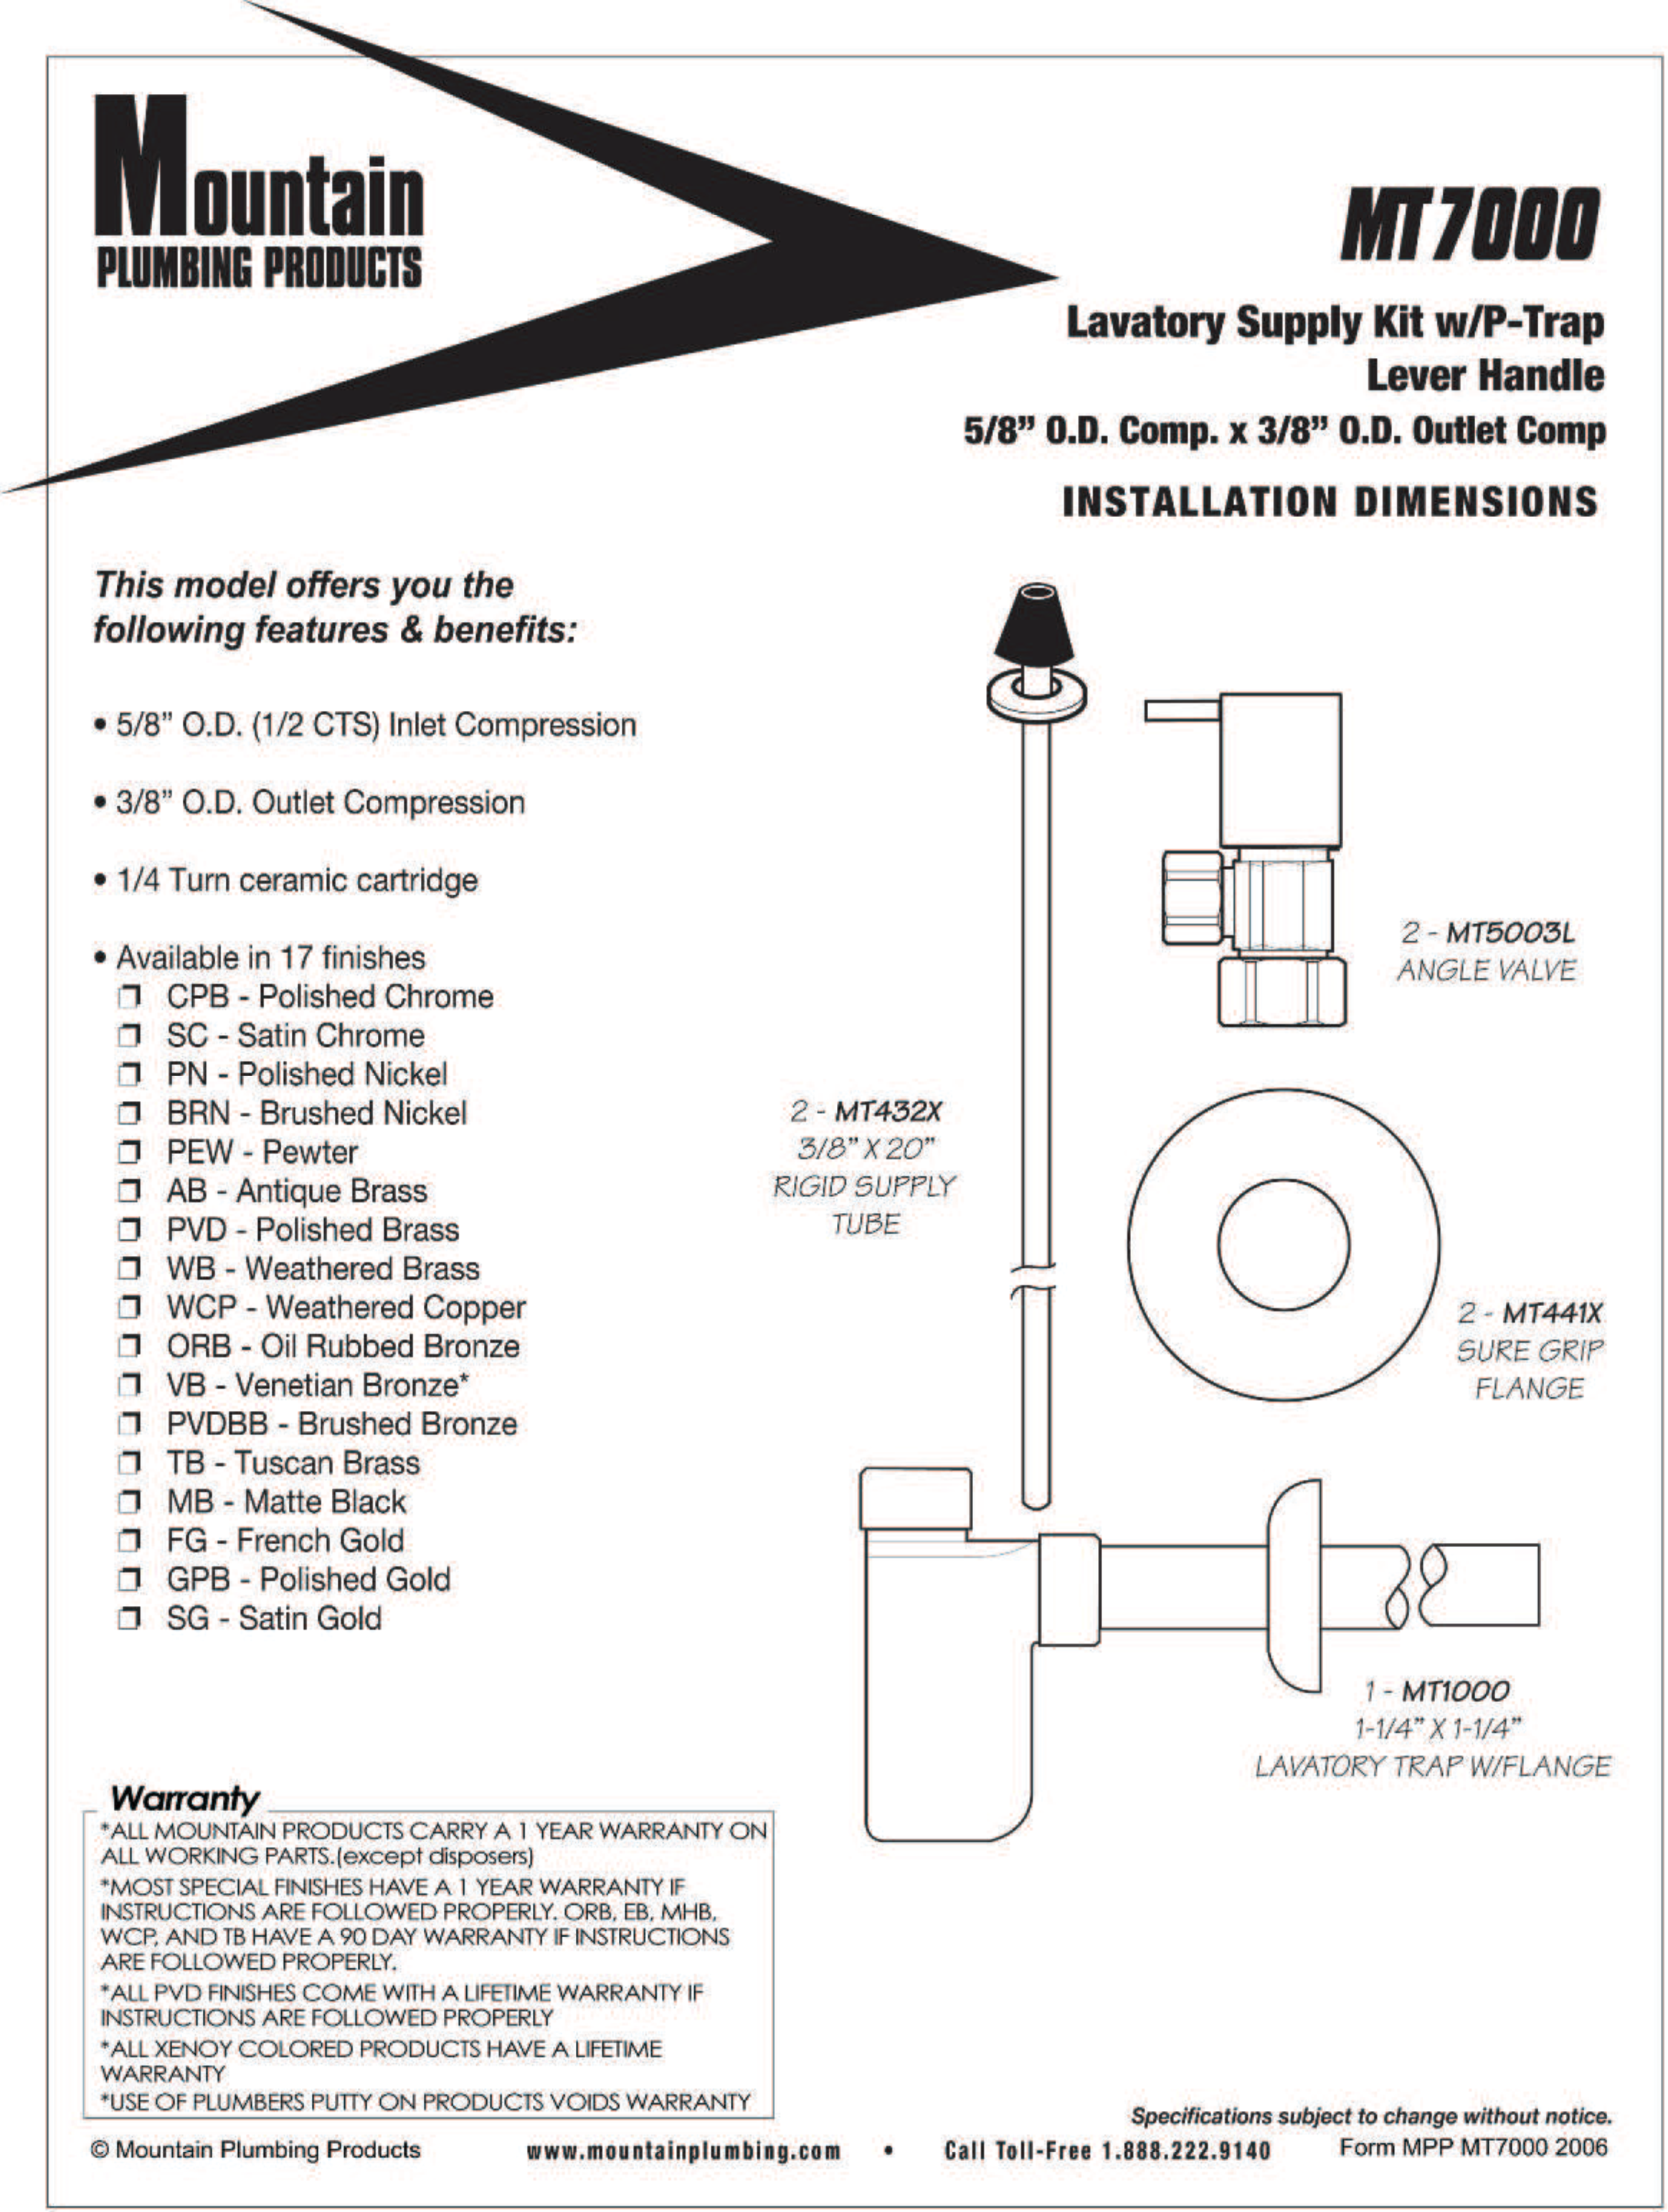 Picture of Decorative Lavatory Supply Kit w/Trap